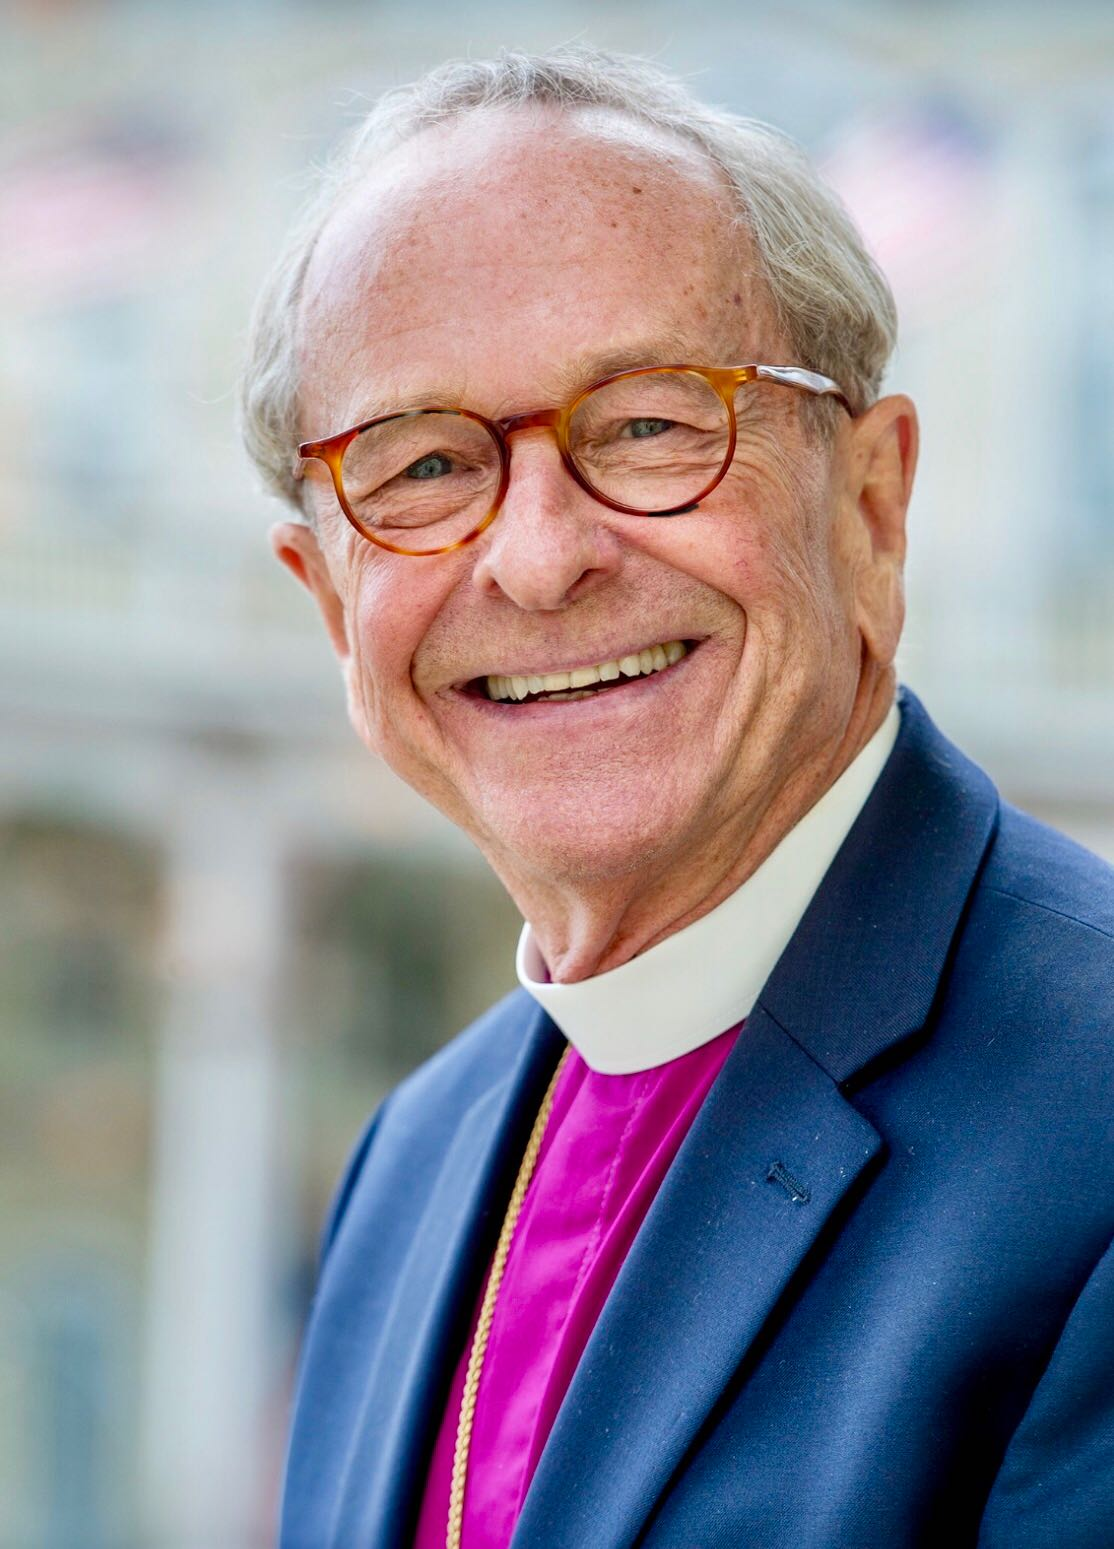 Bishop Gene Robinson - First openly gay and partnered priest to become bishop in historic Christianity